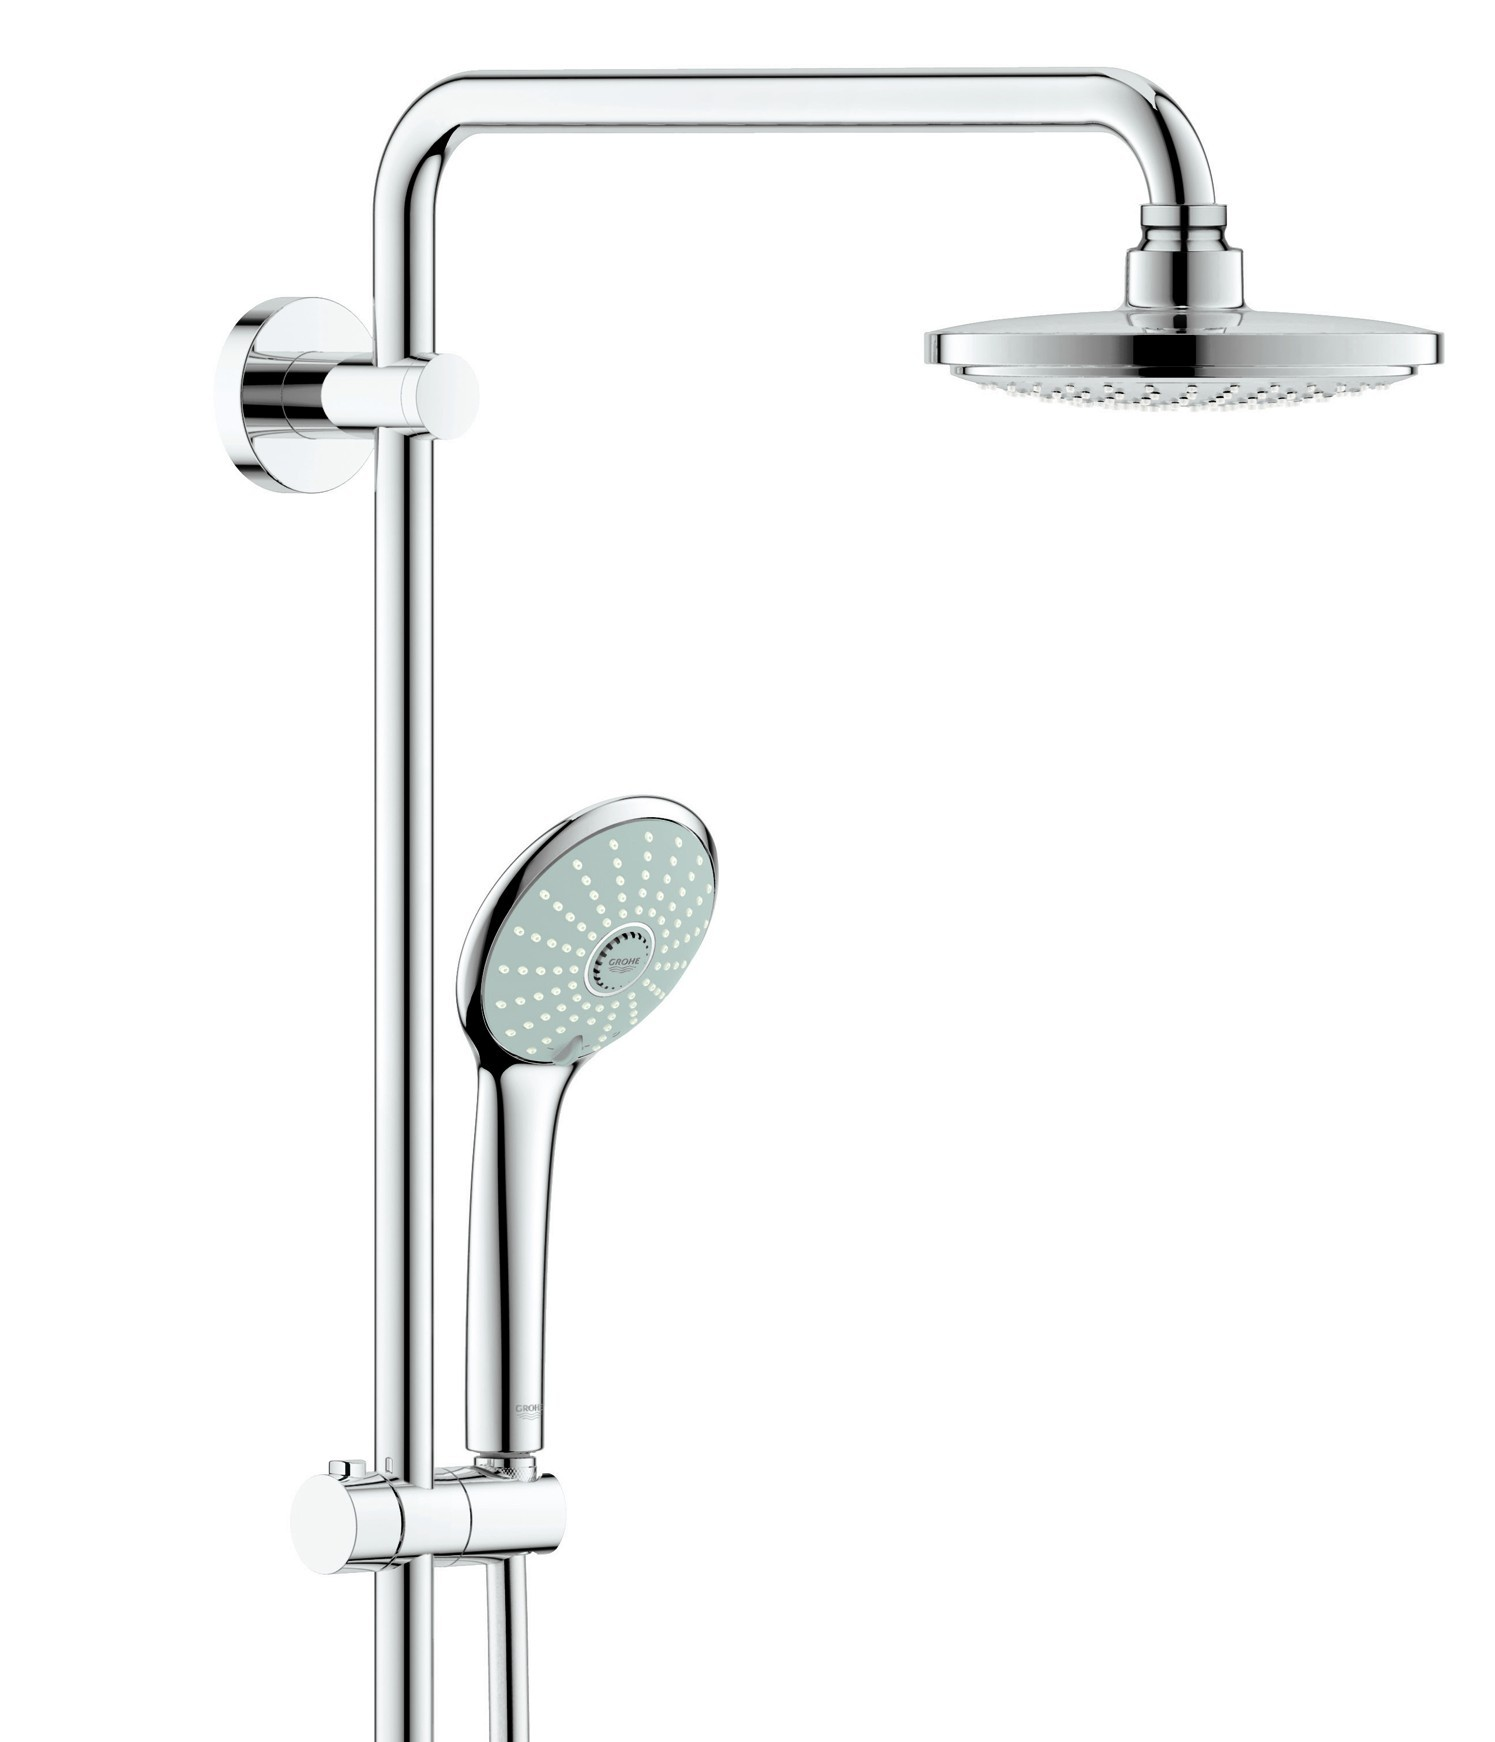 grohe euphoria shower system 260 ecojoy with bathtub thermostatic mixer chrome. Black Bedroom Furniture Sets. Home Design Ideas